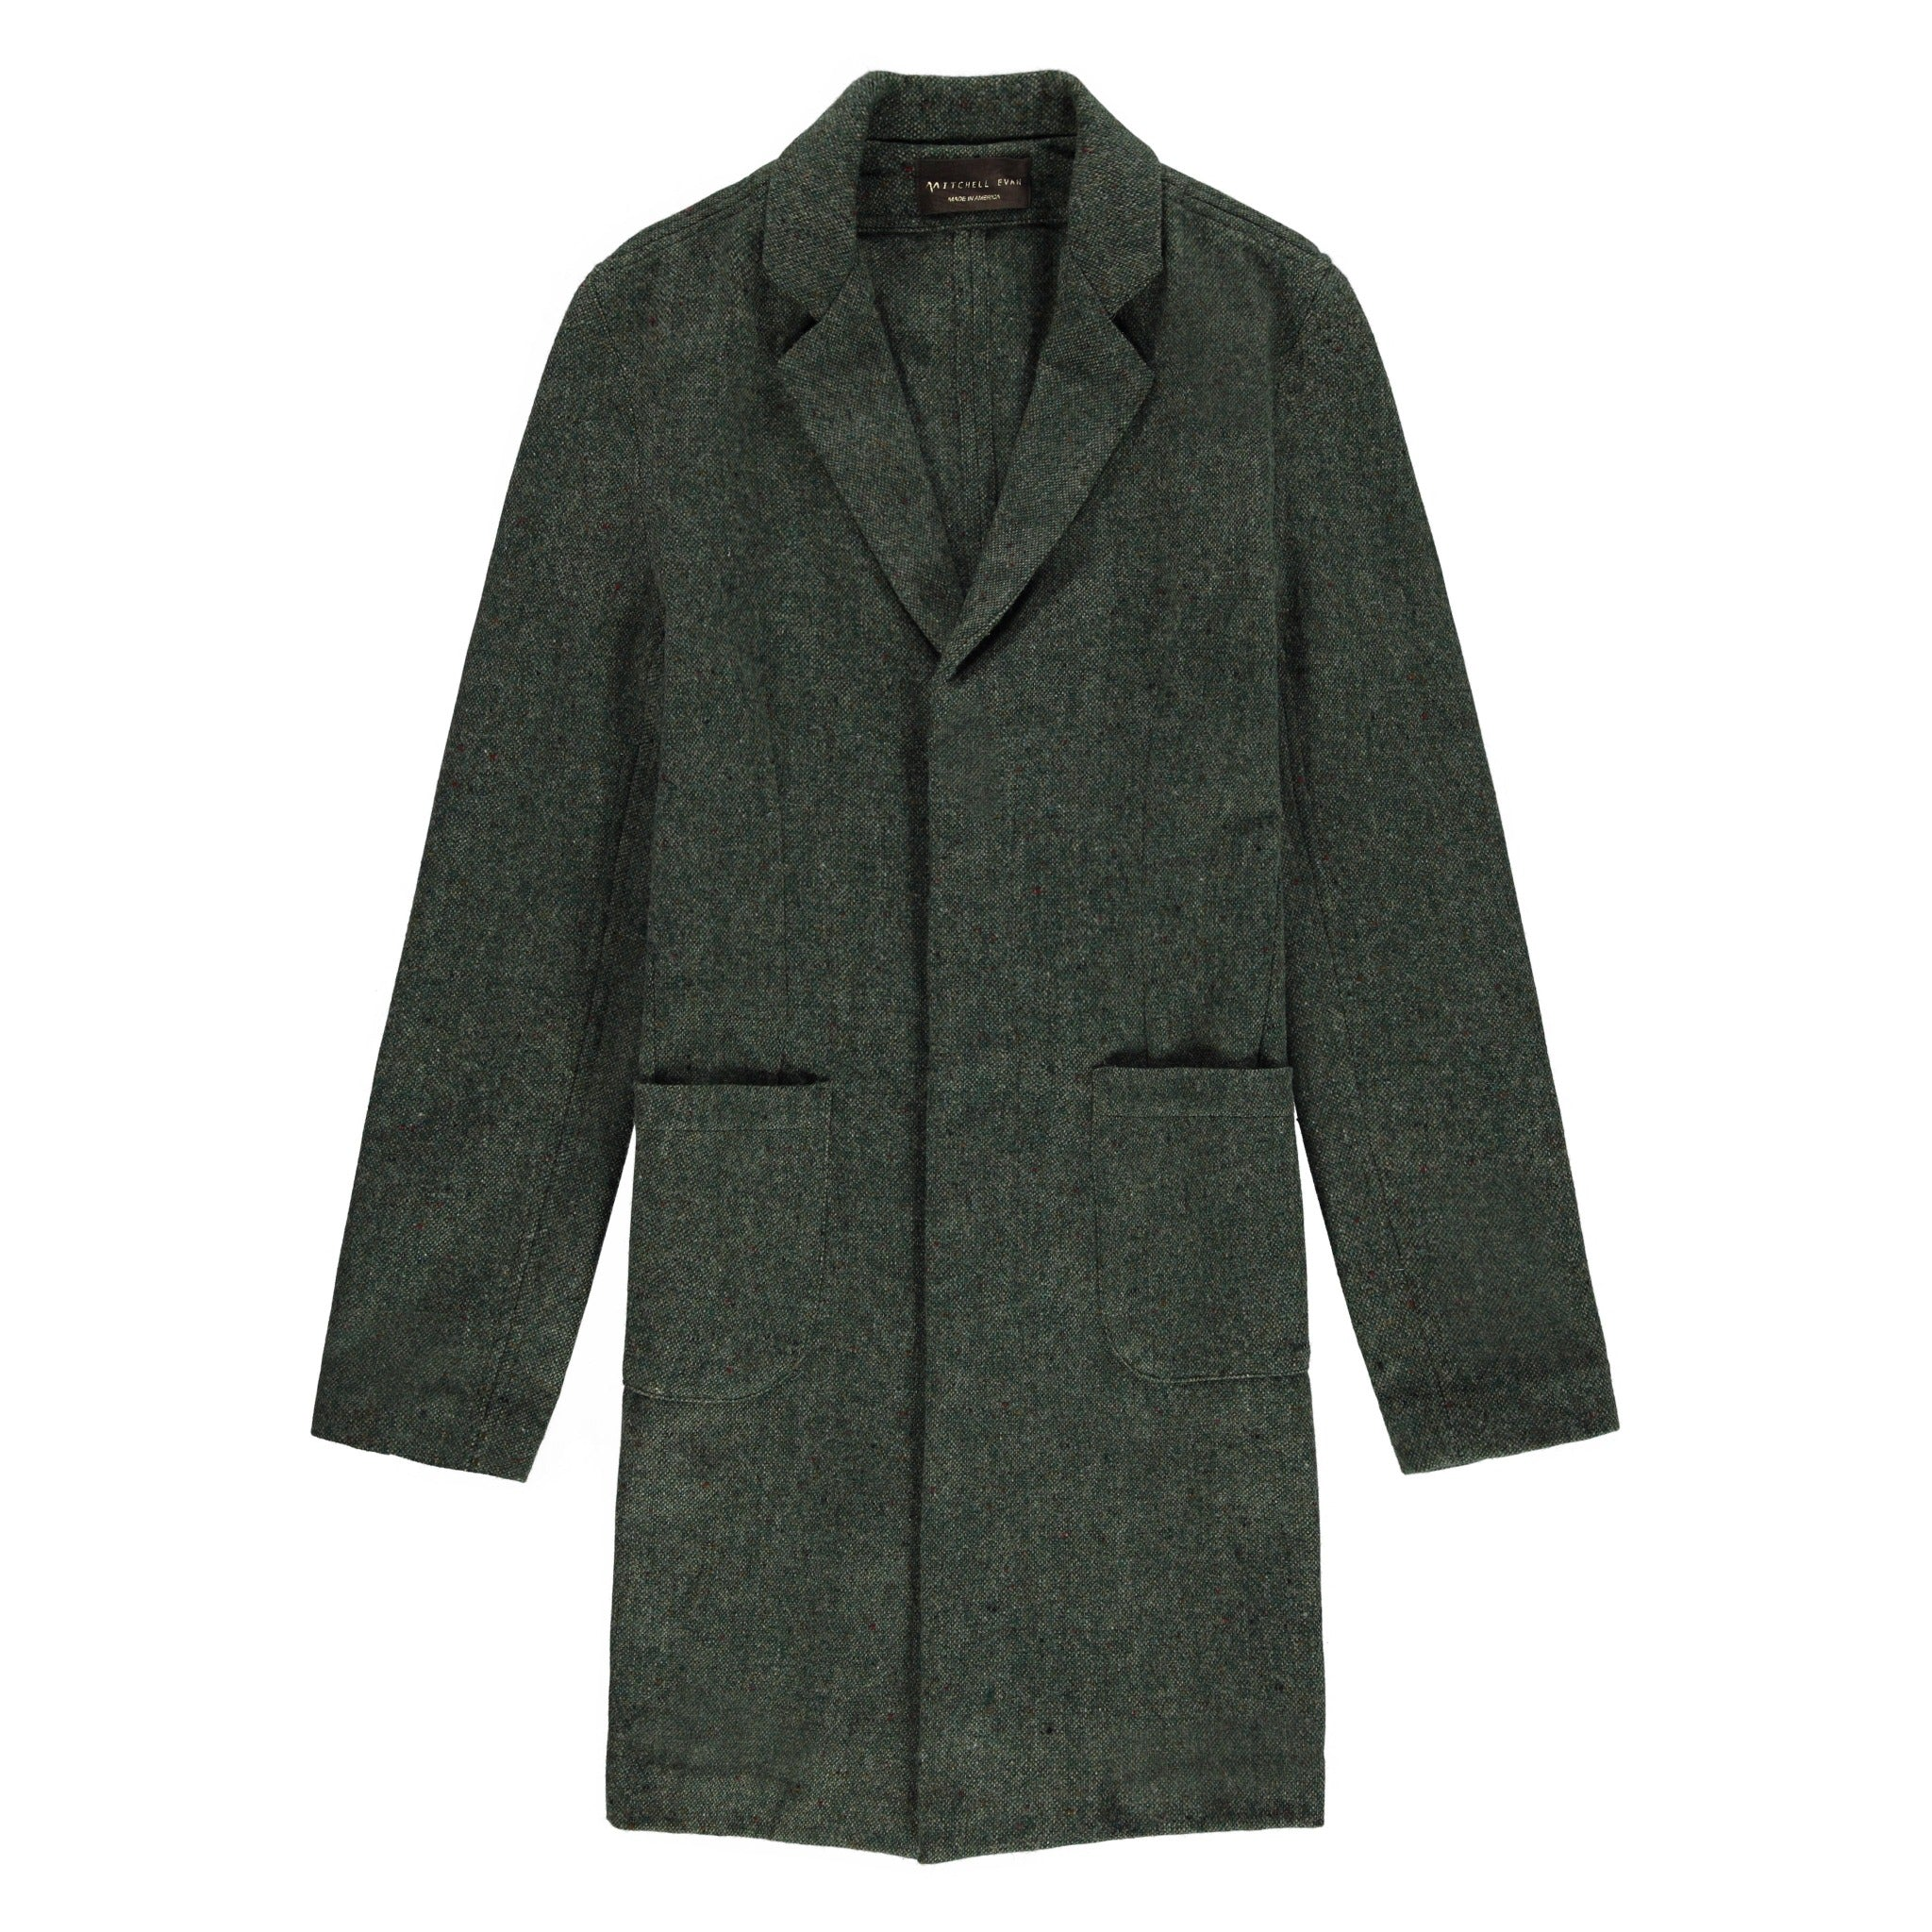 Cusack Overcoat in Heather Green - Mitchell Evan